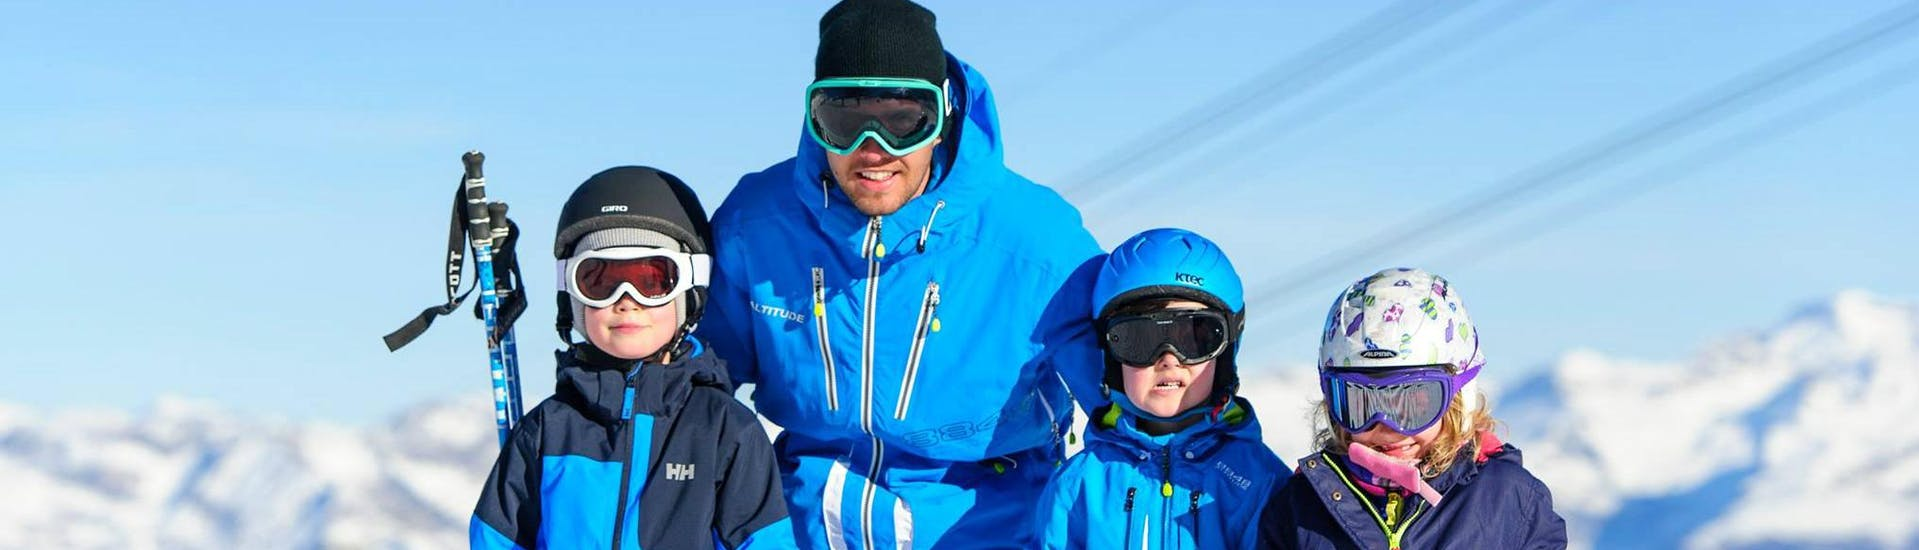 A ski instructor of Altitude Ski School Zermatt is posing for a photo with his students during the Private Ski Lessons for Kids - All Levels.